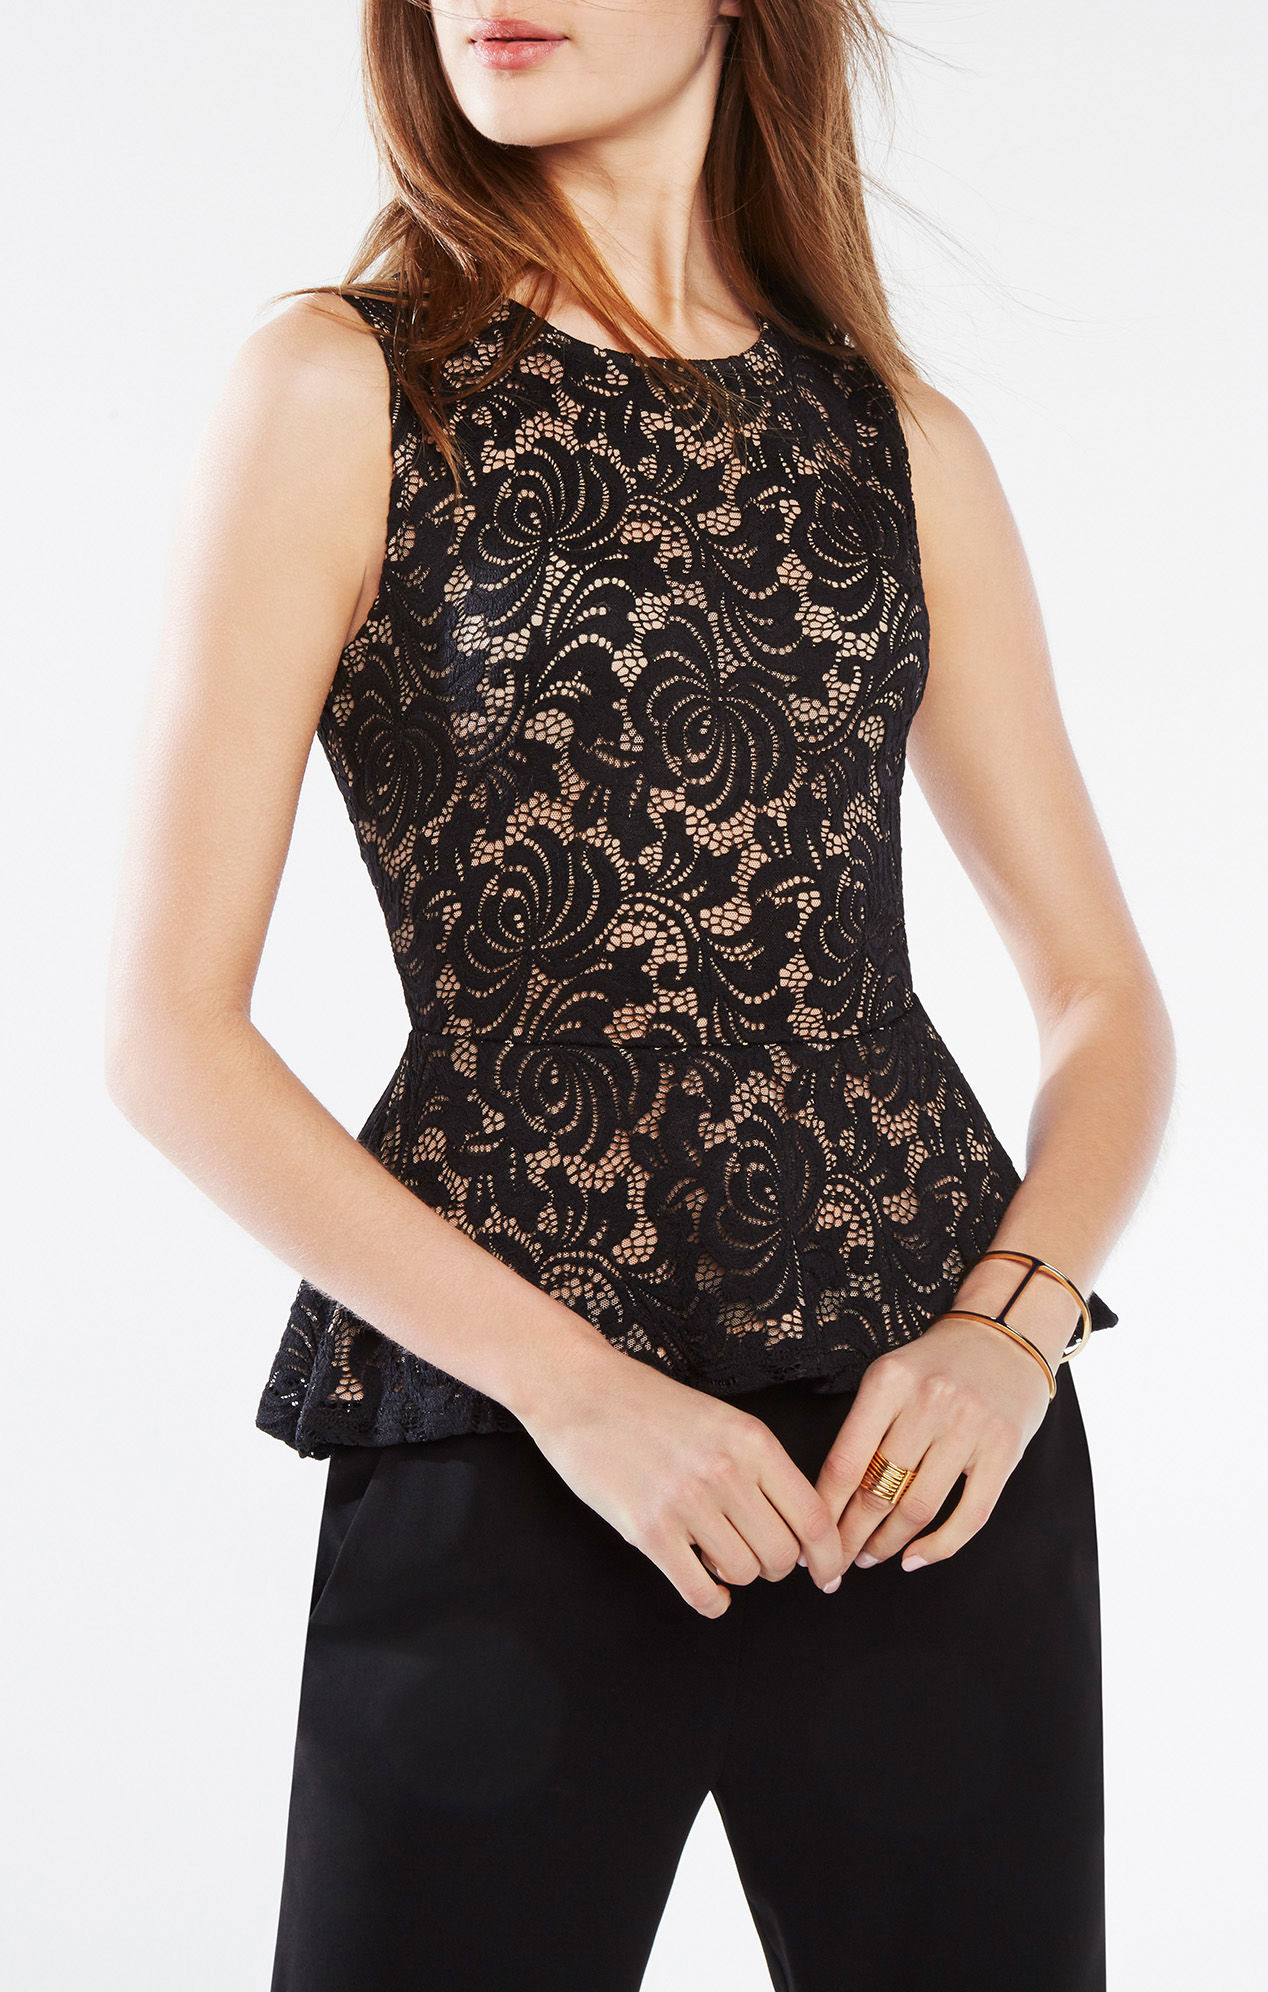 Shop for BLACK XL Floral Lace Peplum Top online at $ and discover fashion at loadingbassqz.cf Cheapest and Latest women & men fashion site including categories such as dresses, shoes, bags and jewelry with free shipping all over the world.